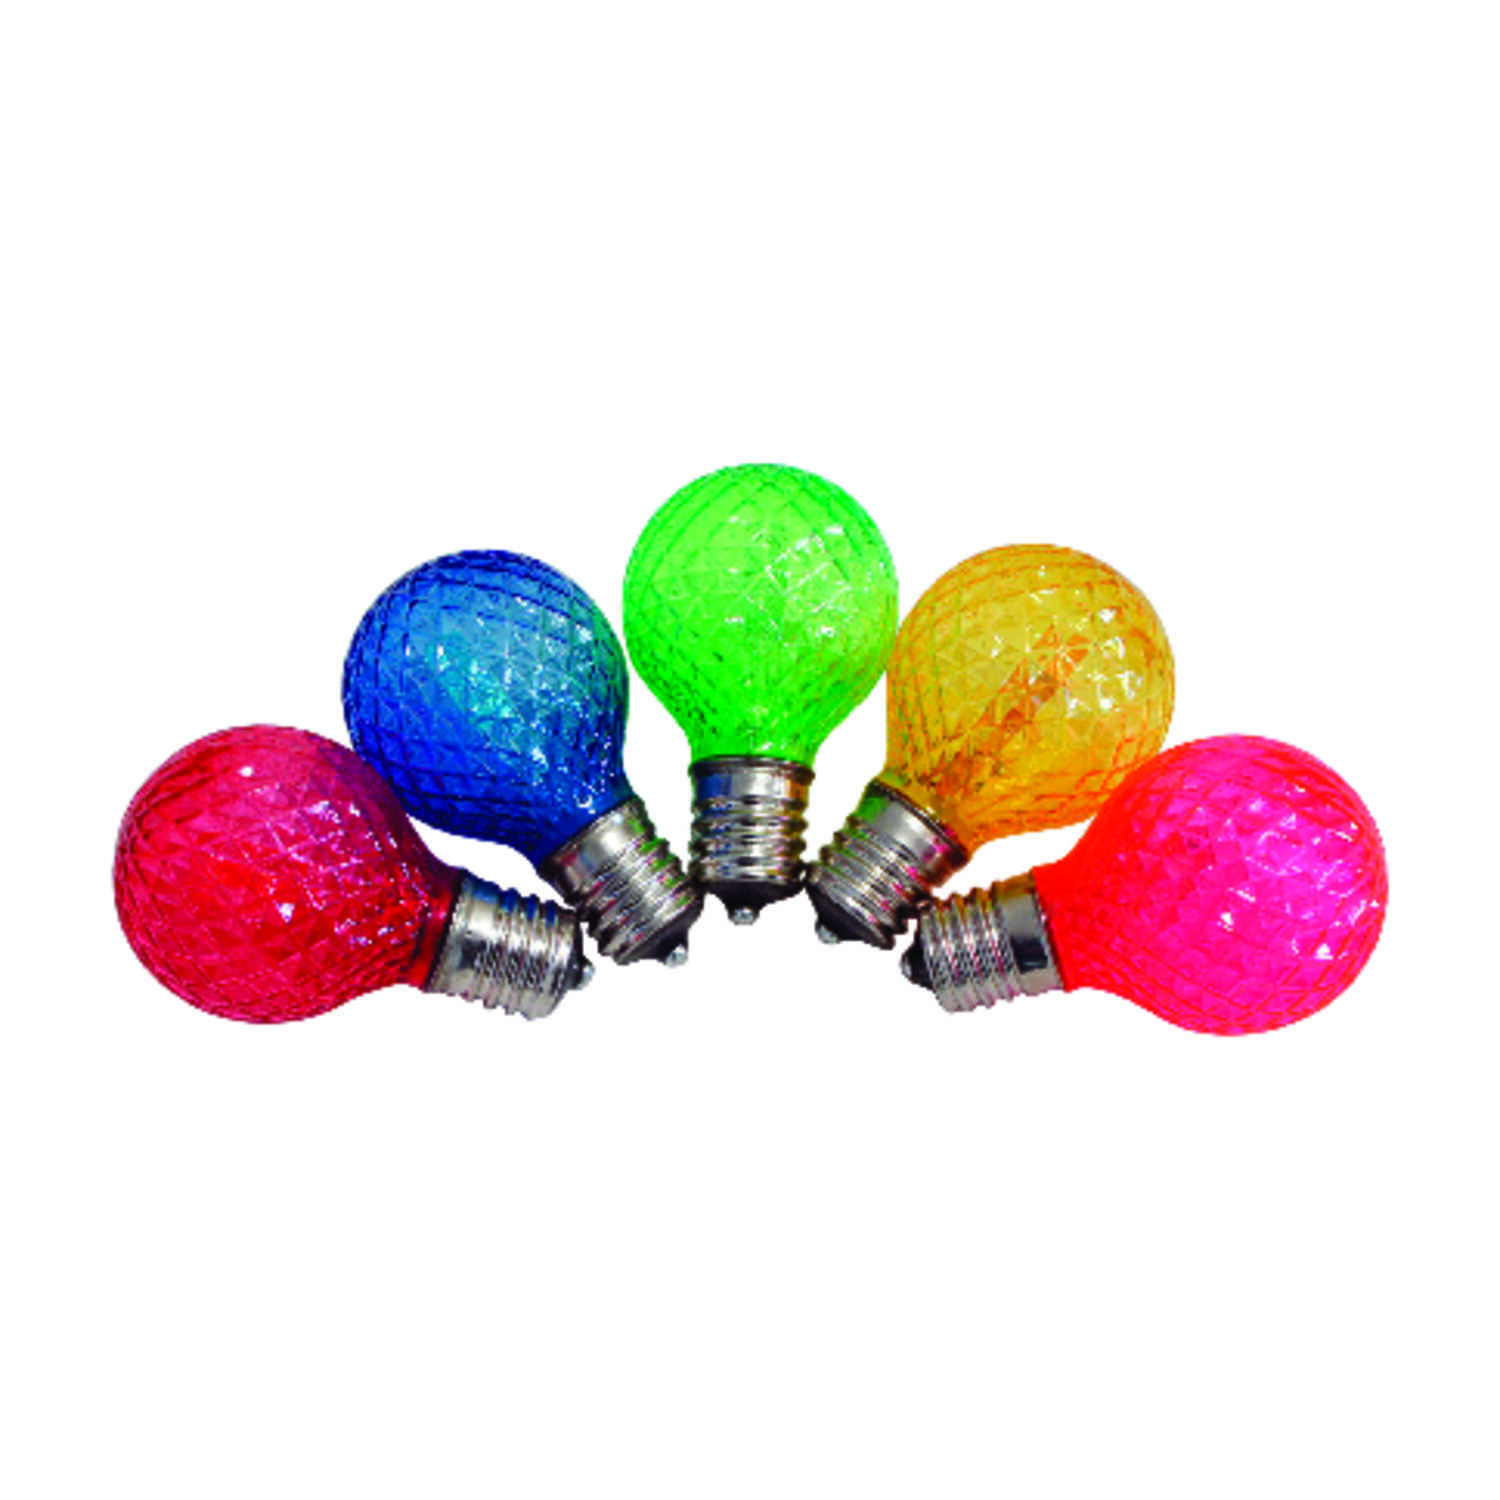 Celebrations  G40  LED  Replacement Bulb  Multicolored  25 lights